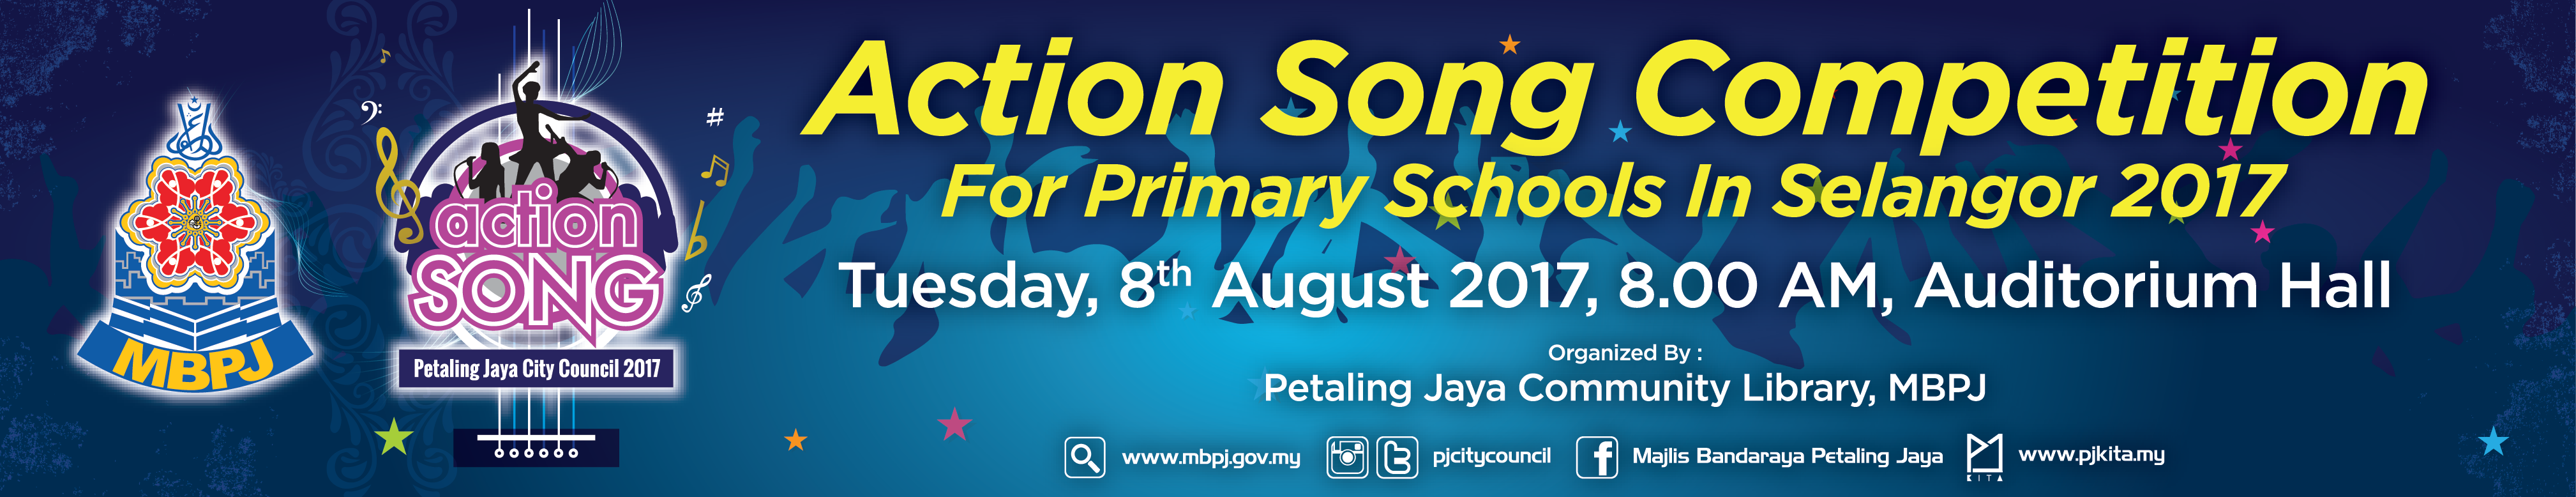 Action Song Competition 2017